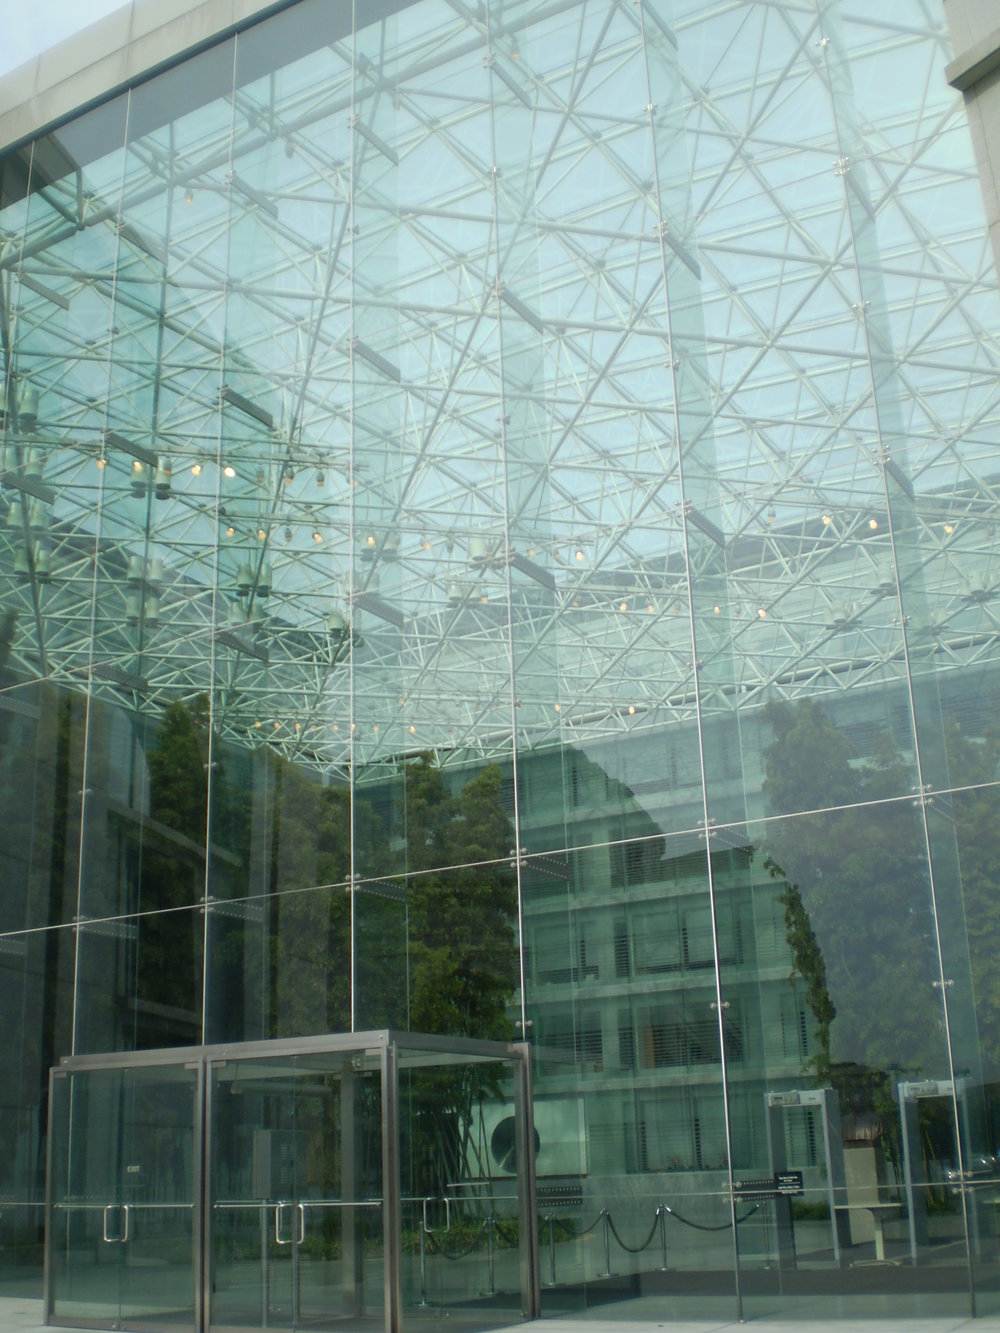 Thurgood_Marshall_Federal_Judiciary_Building_glass.JPG